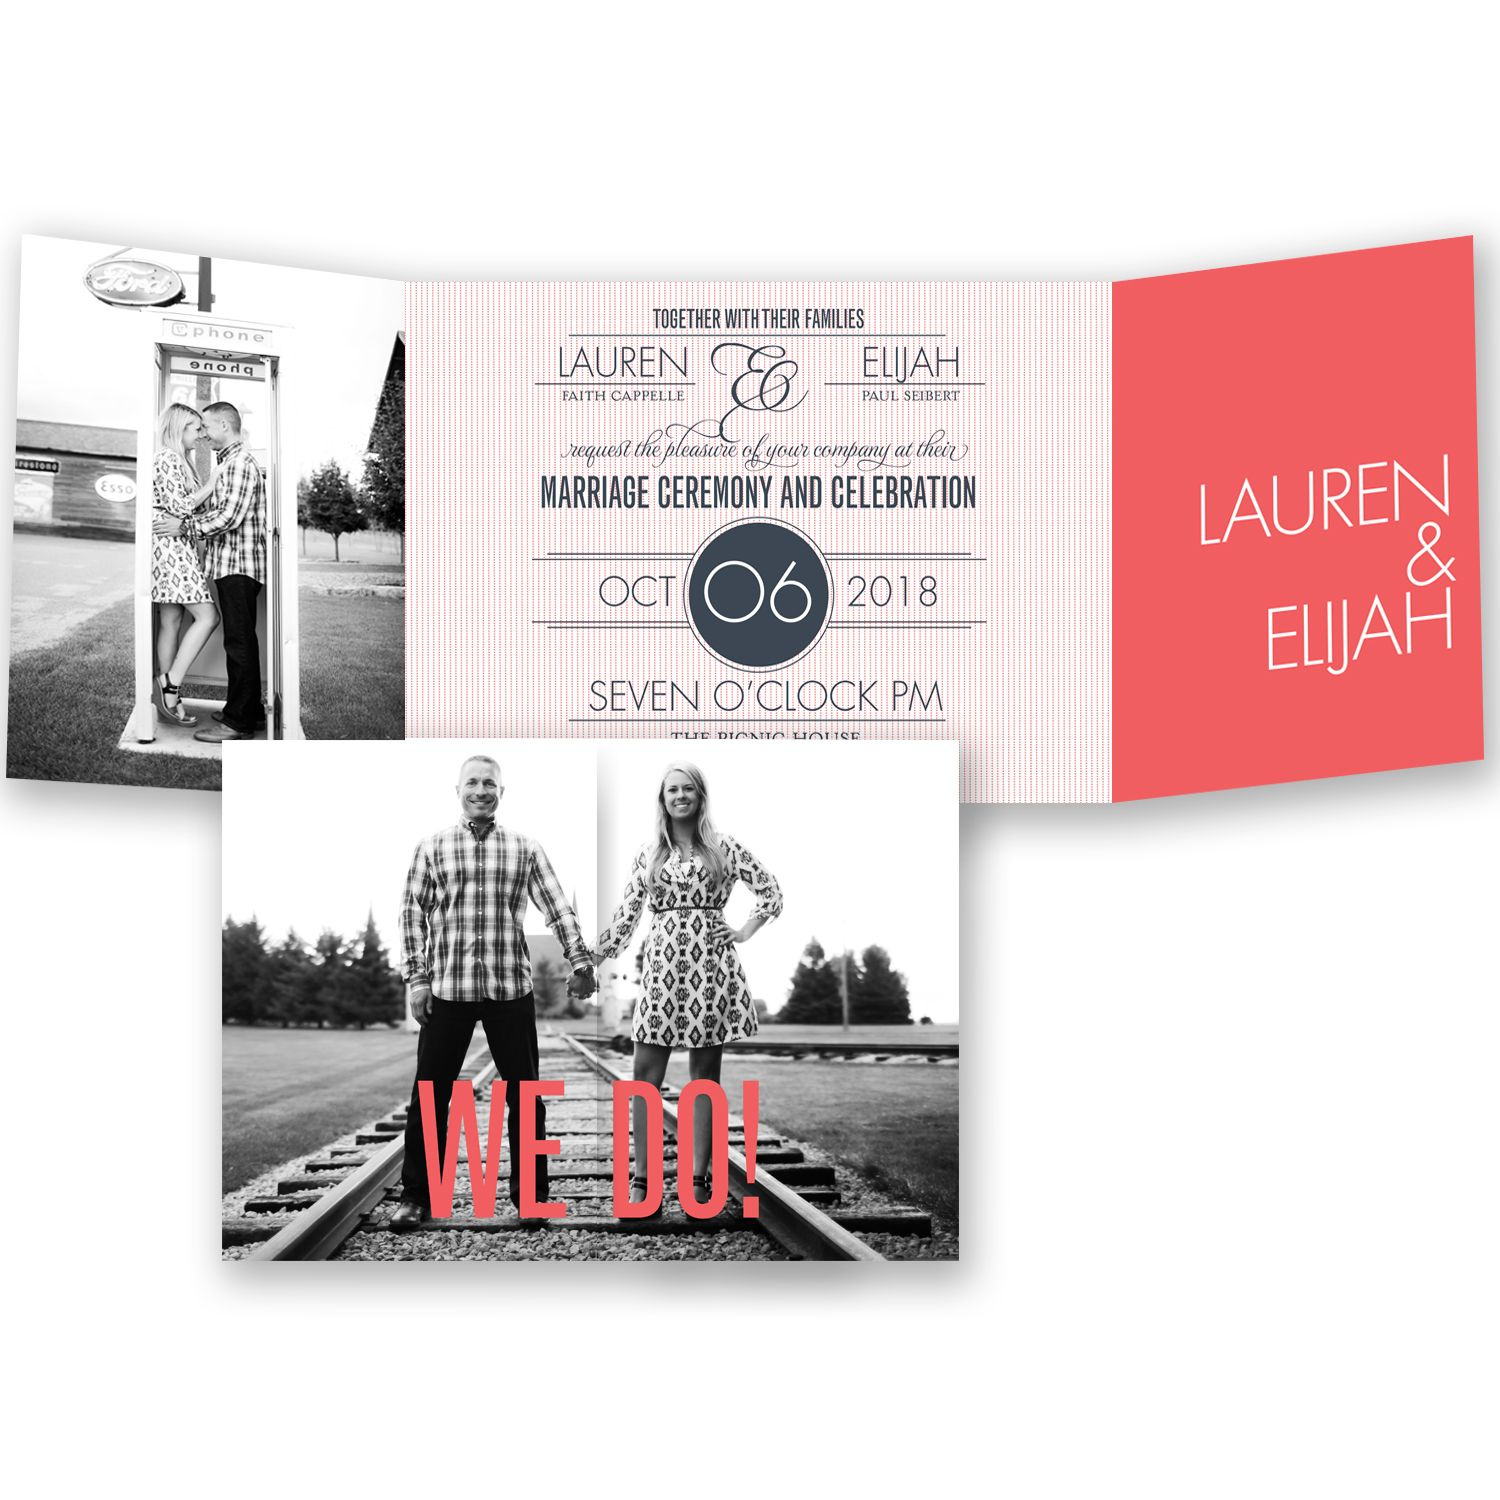 it is official coral photo wedding invitation invitations by davids bridal enter the - Davids Bridal Wedding Invitations